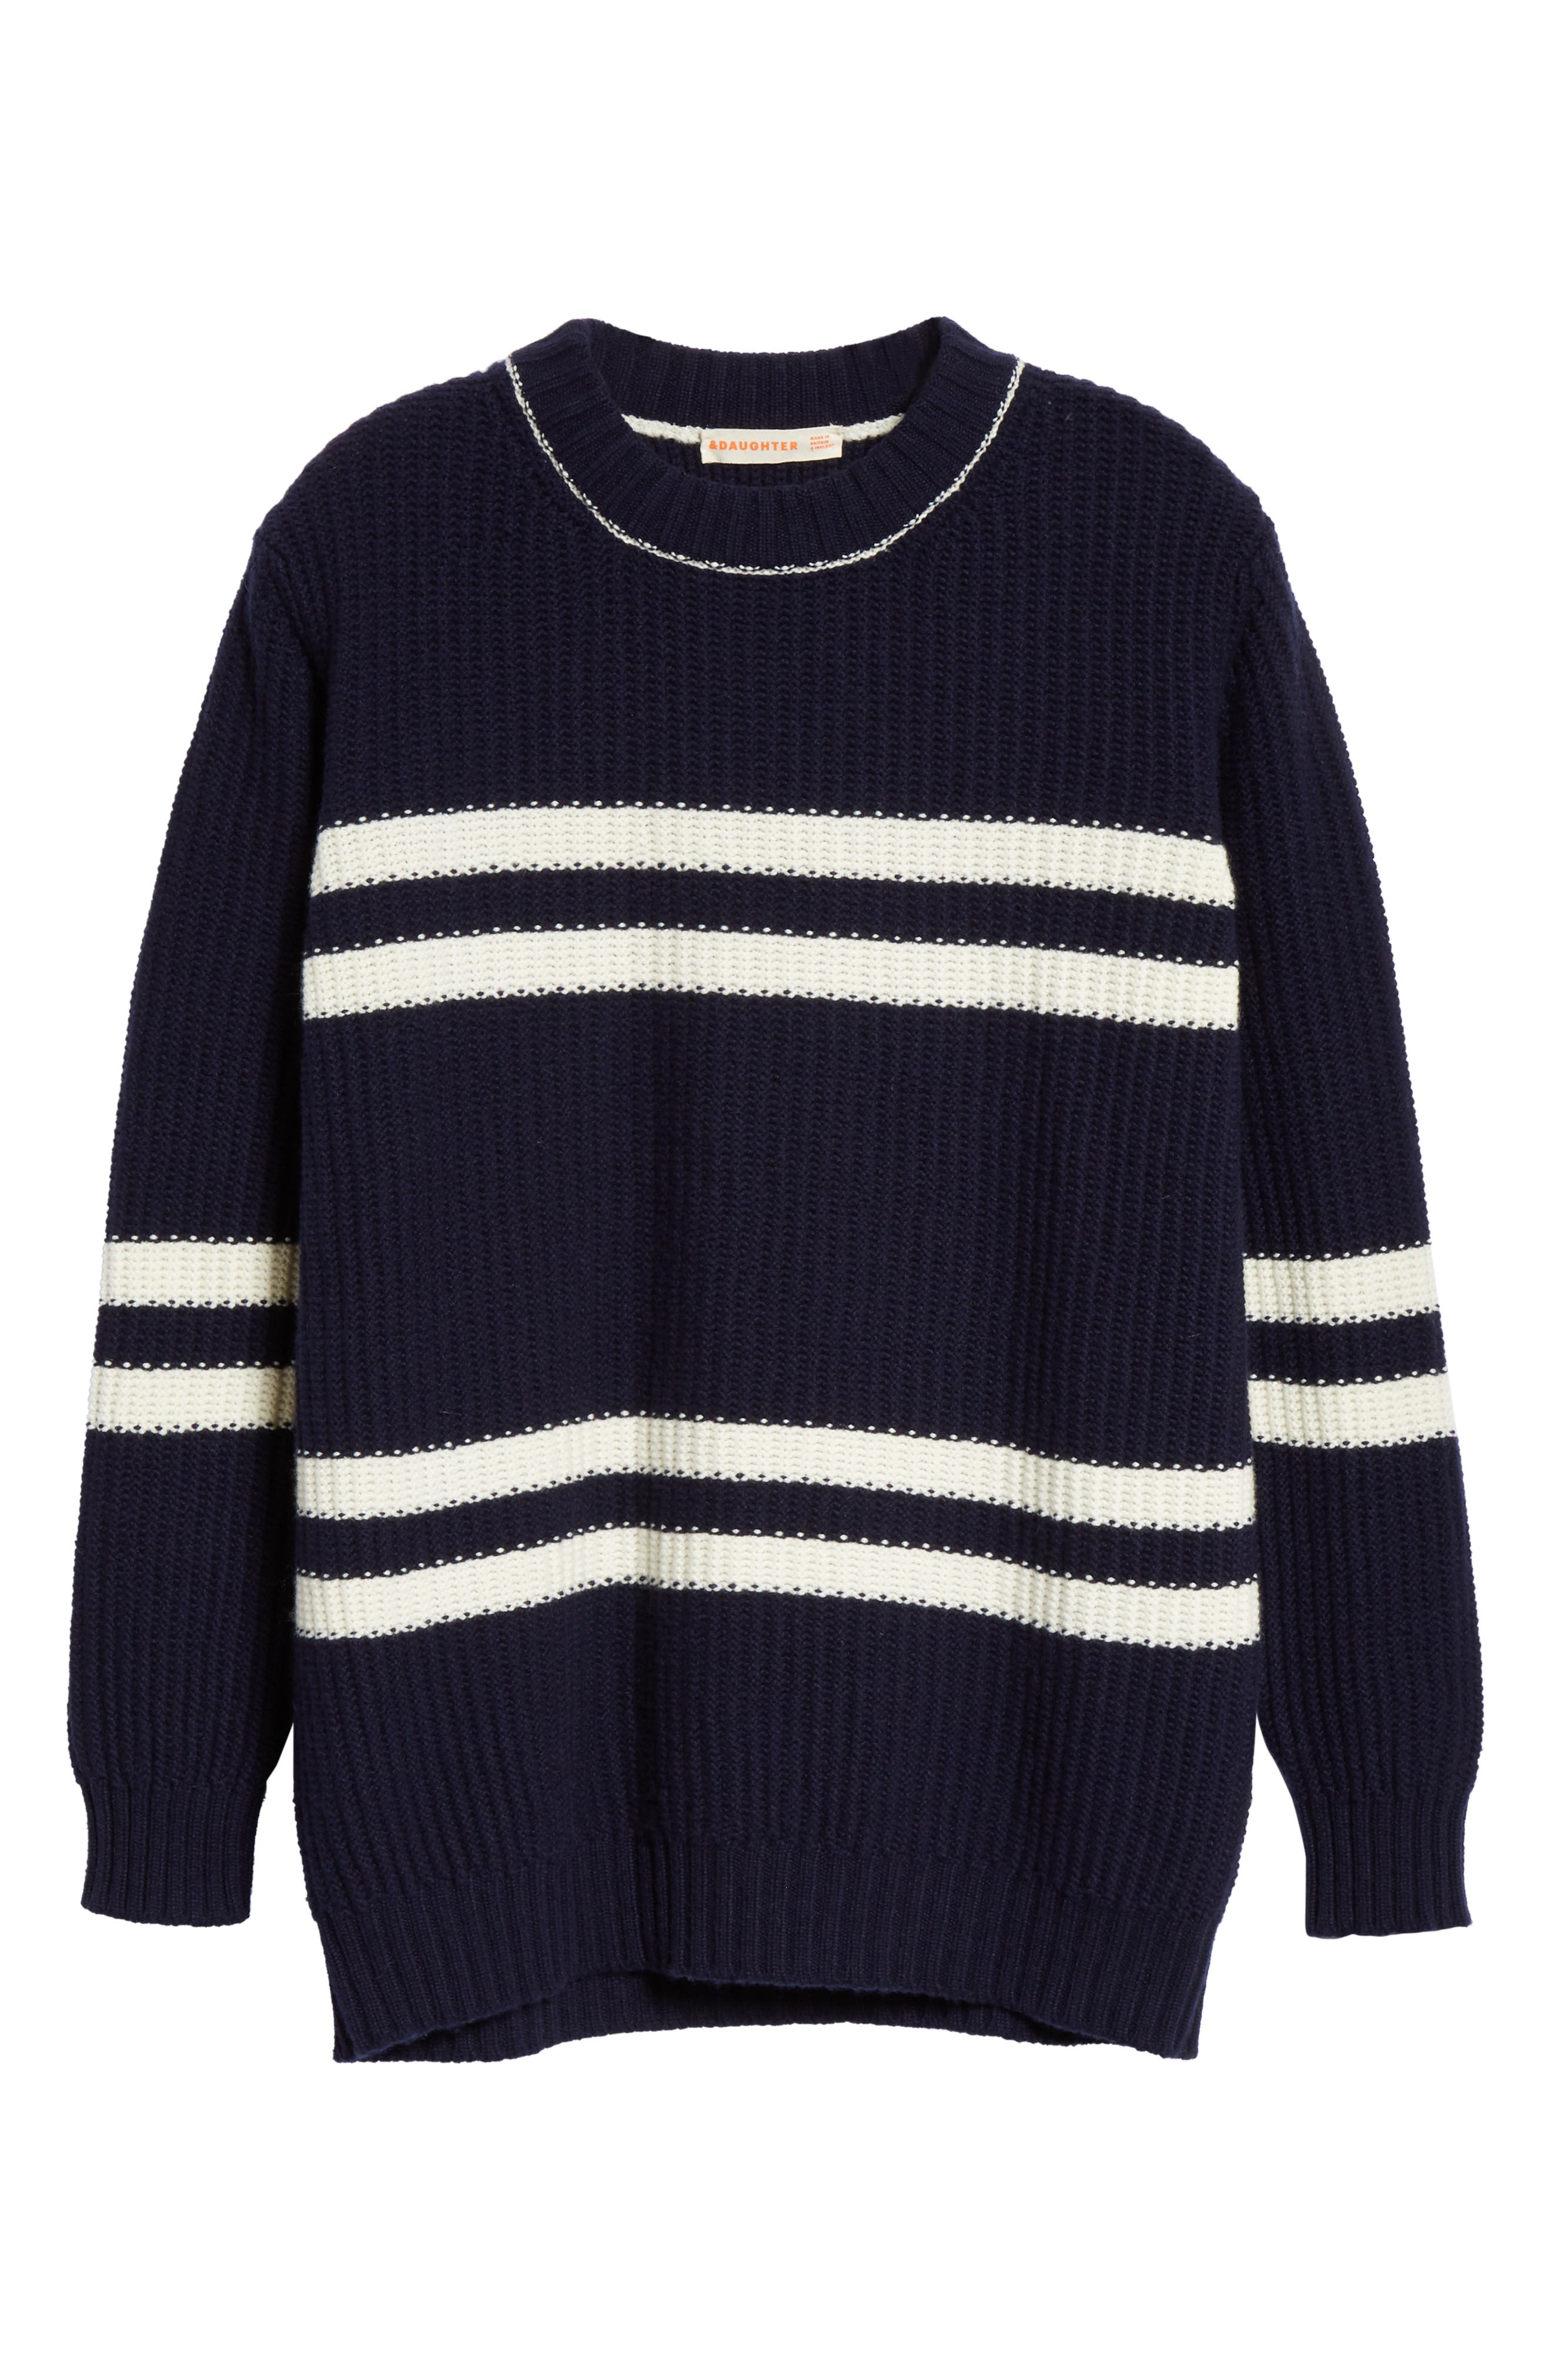 Tieve Stripe Cashmere & Cotton Sweater,                             Alternate thumbnail 6, color,                             NAVY/ ECRU